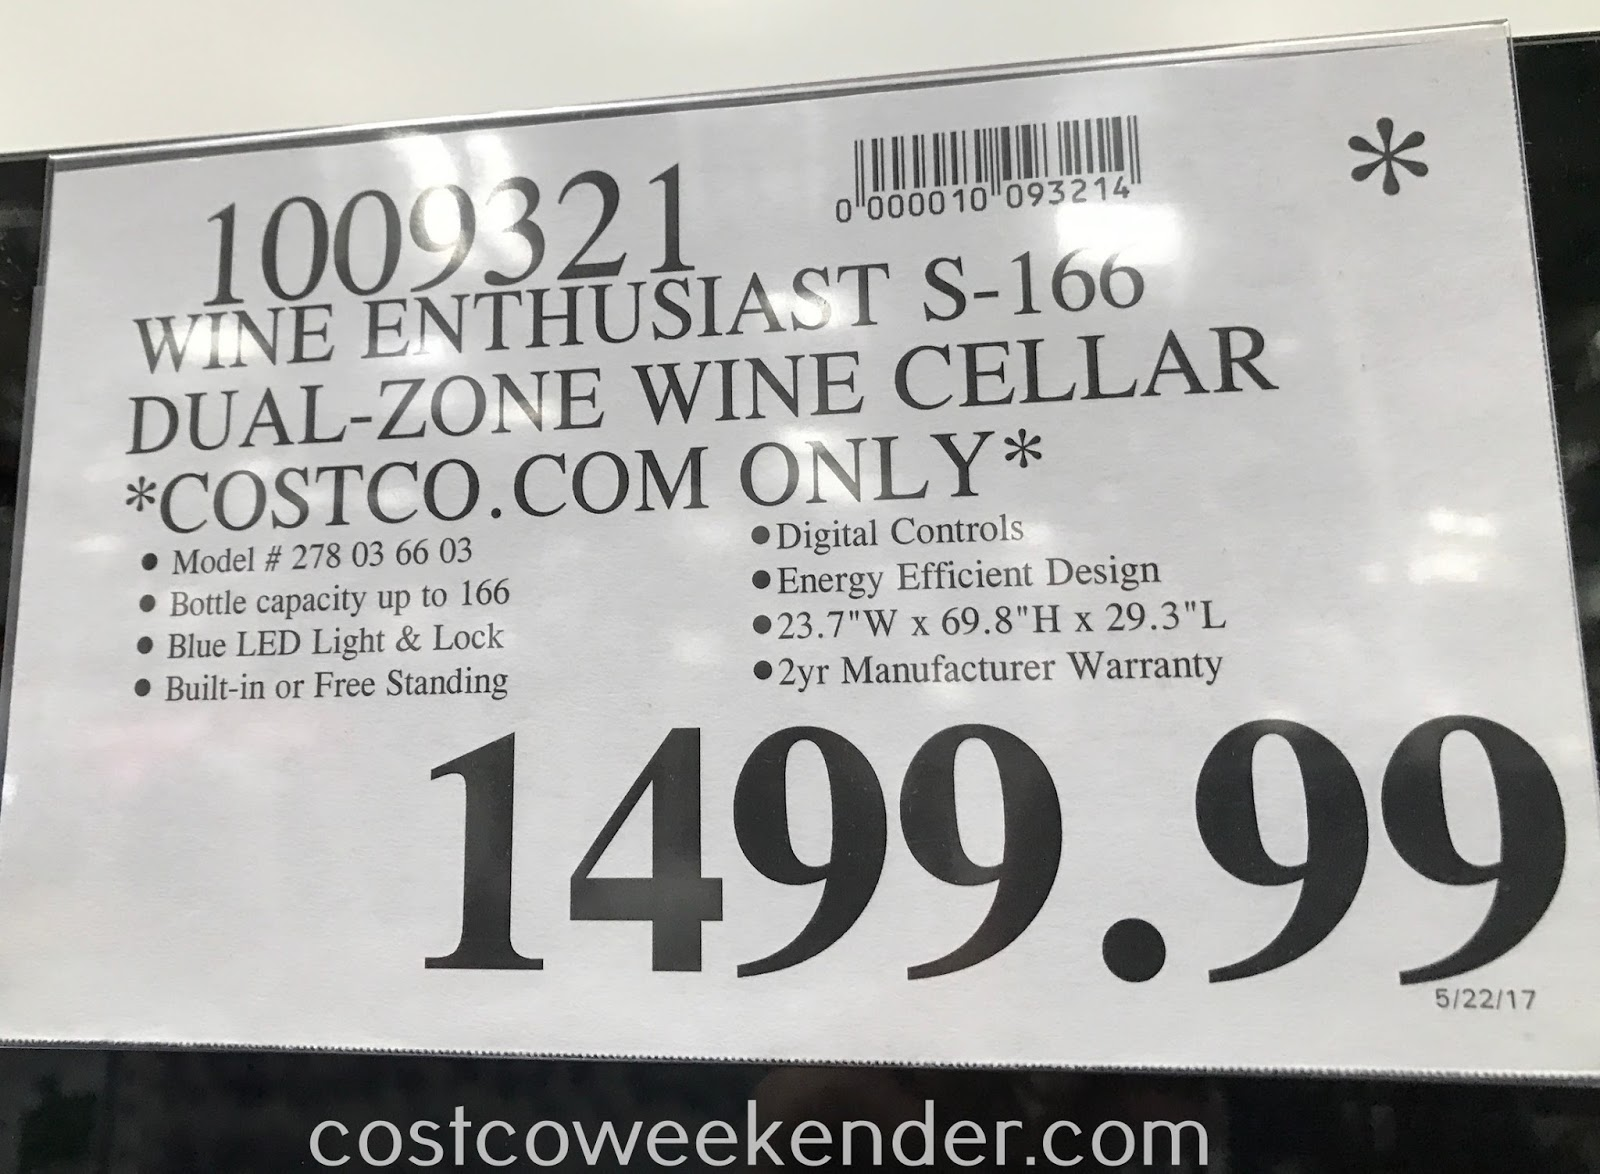 Deal for the Wine Enthusiast S-166 Dual-Zone Wine Cellar at Costco